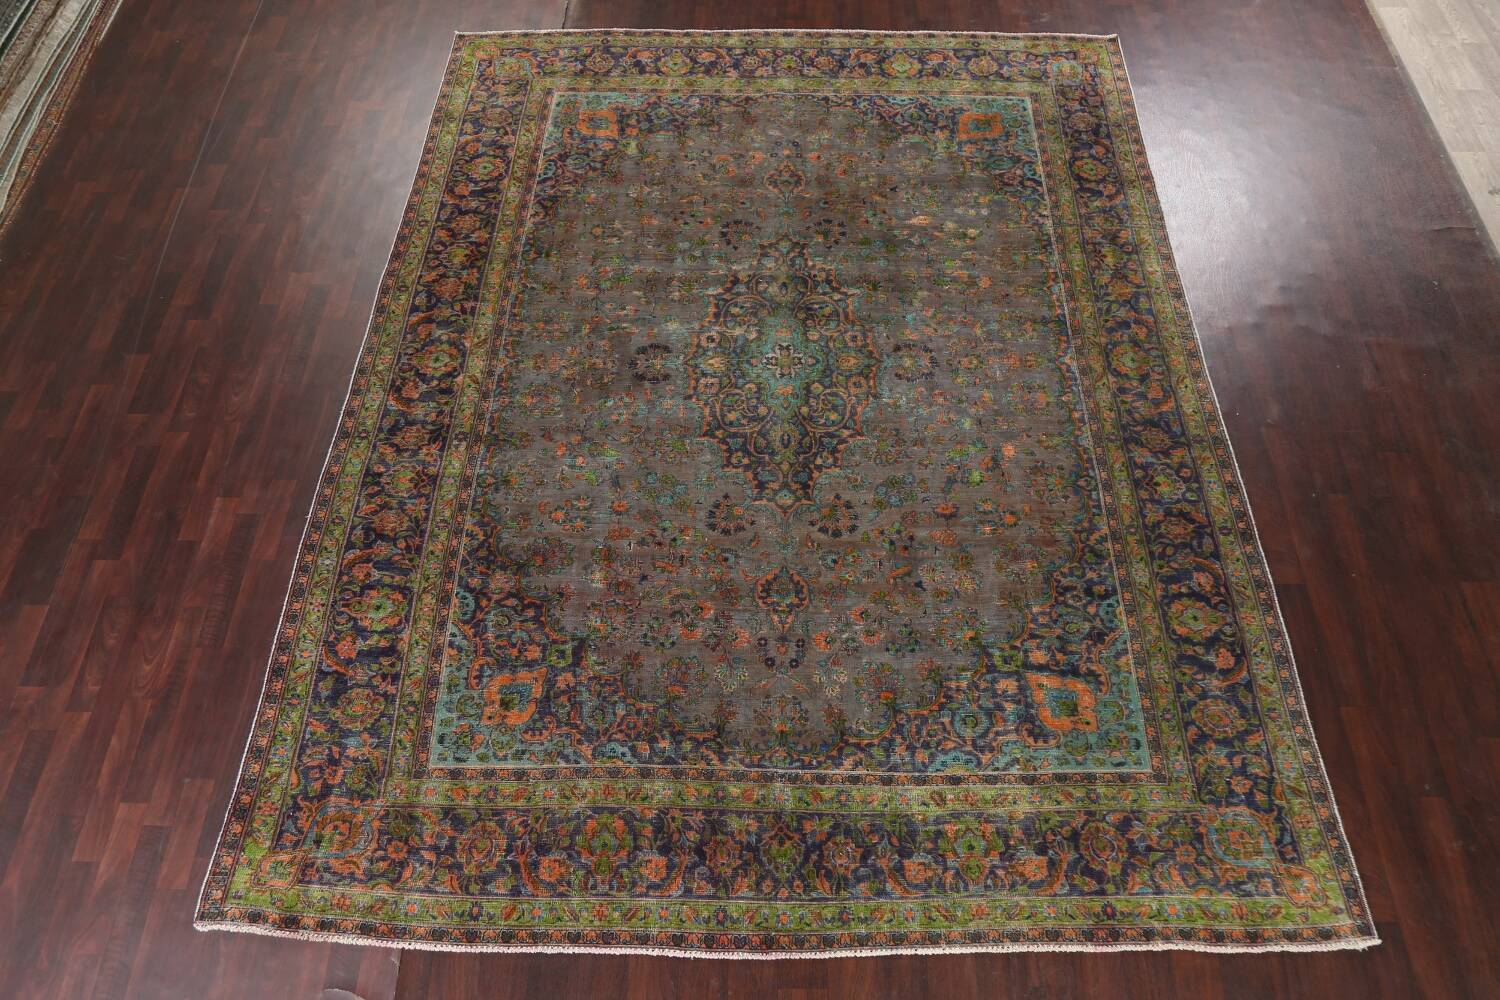 Distressed Over-Dye Kashan Persian Area Rug 10x13 image 3